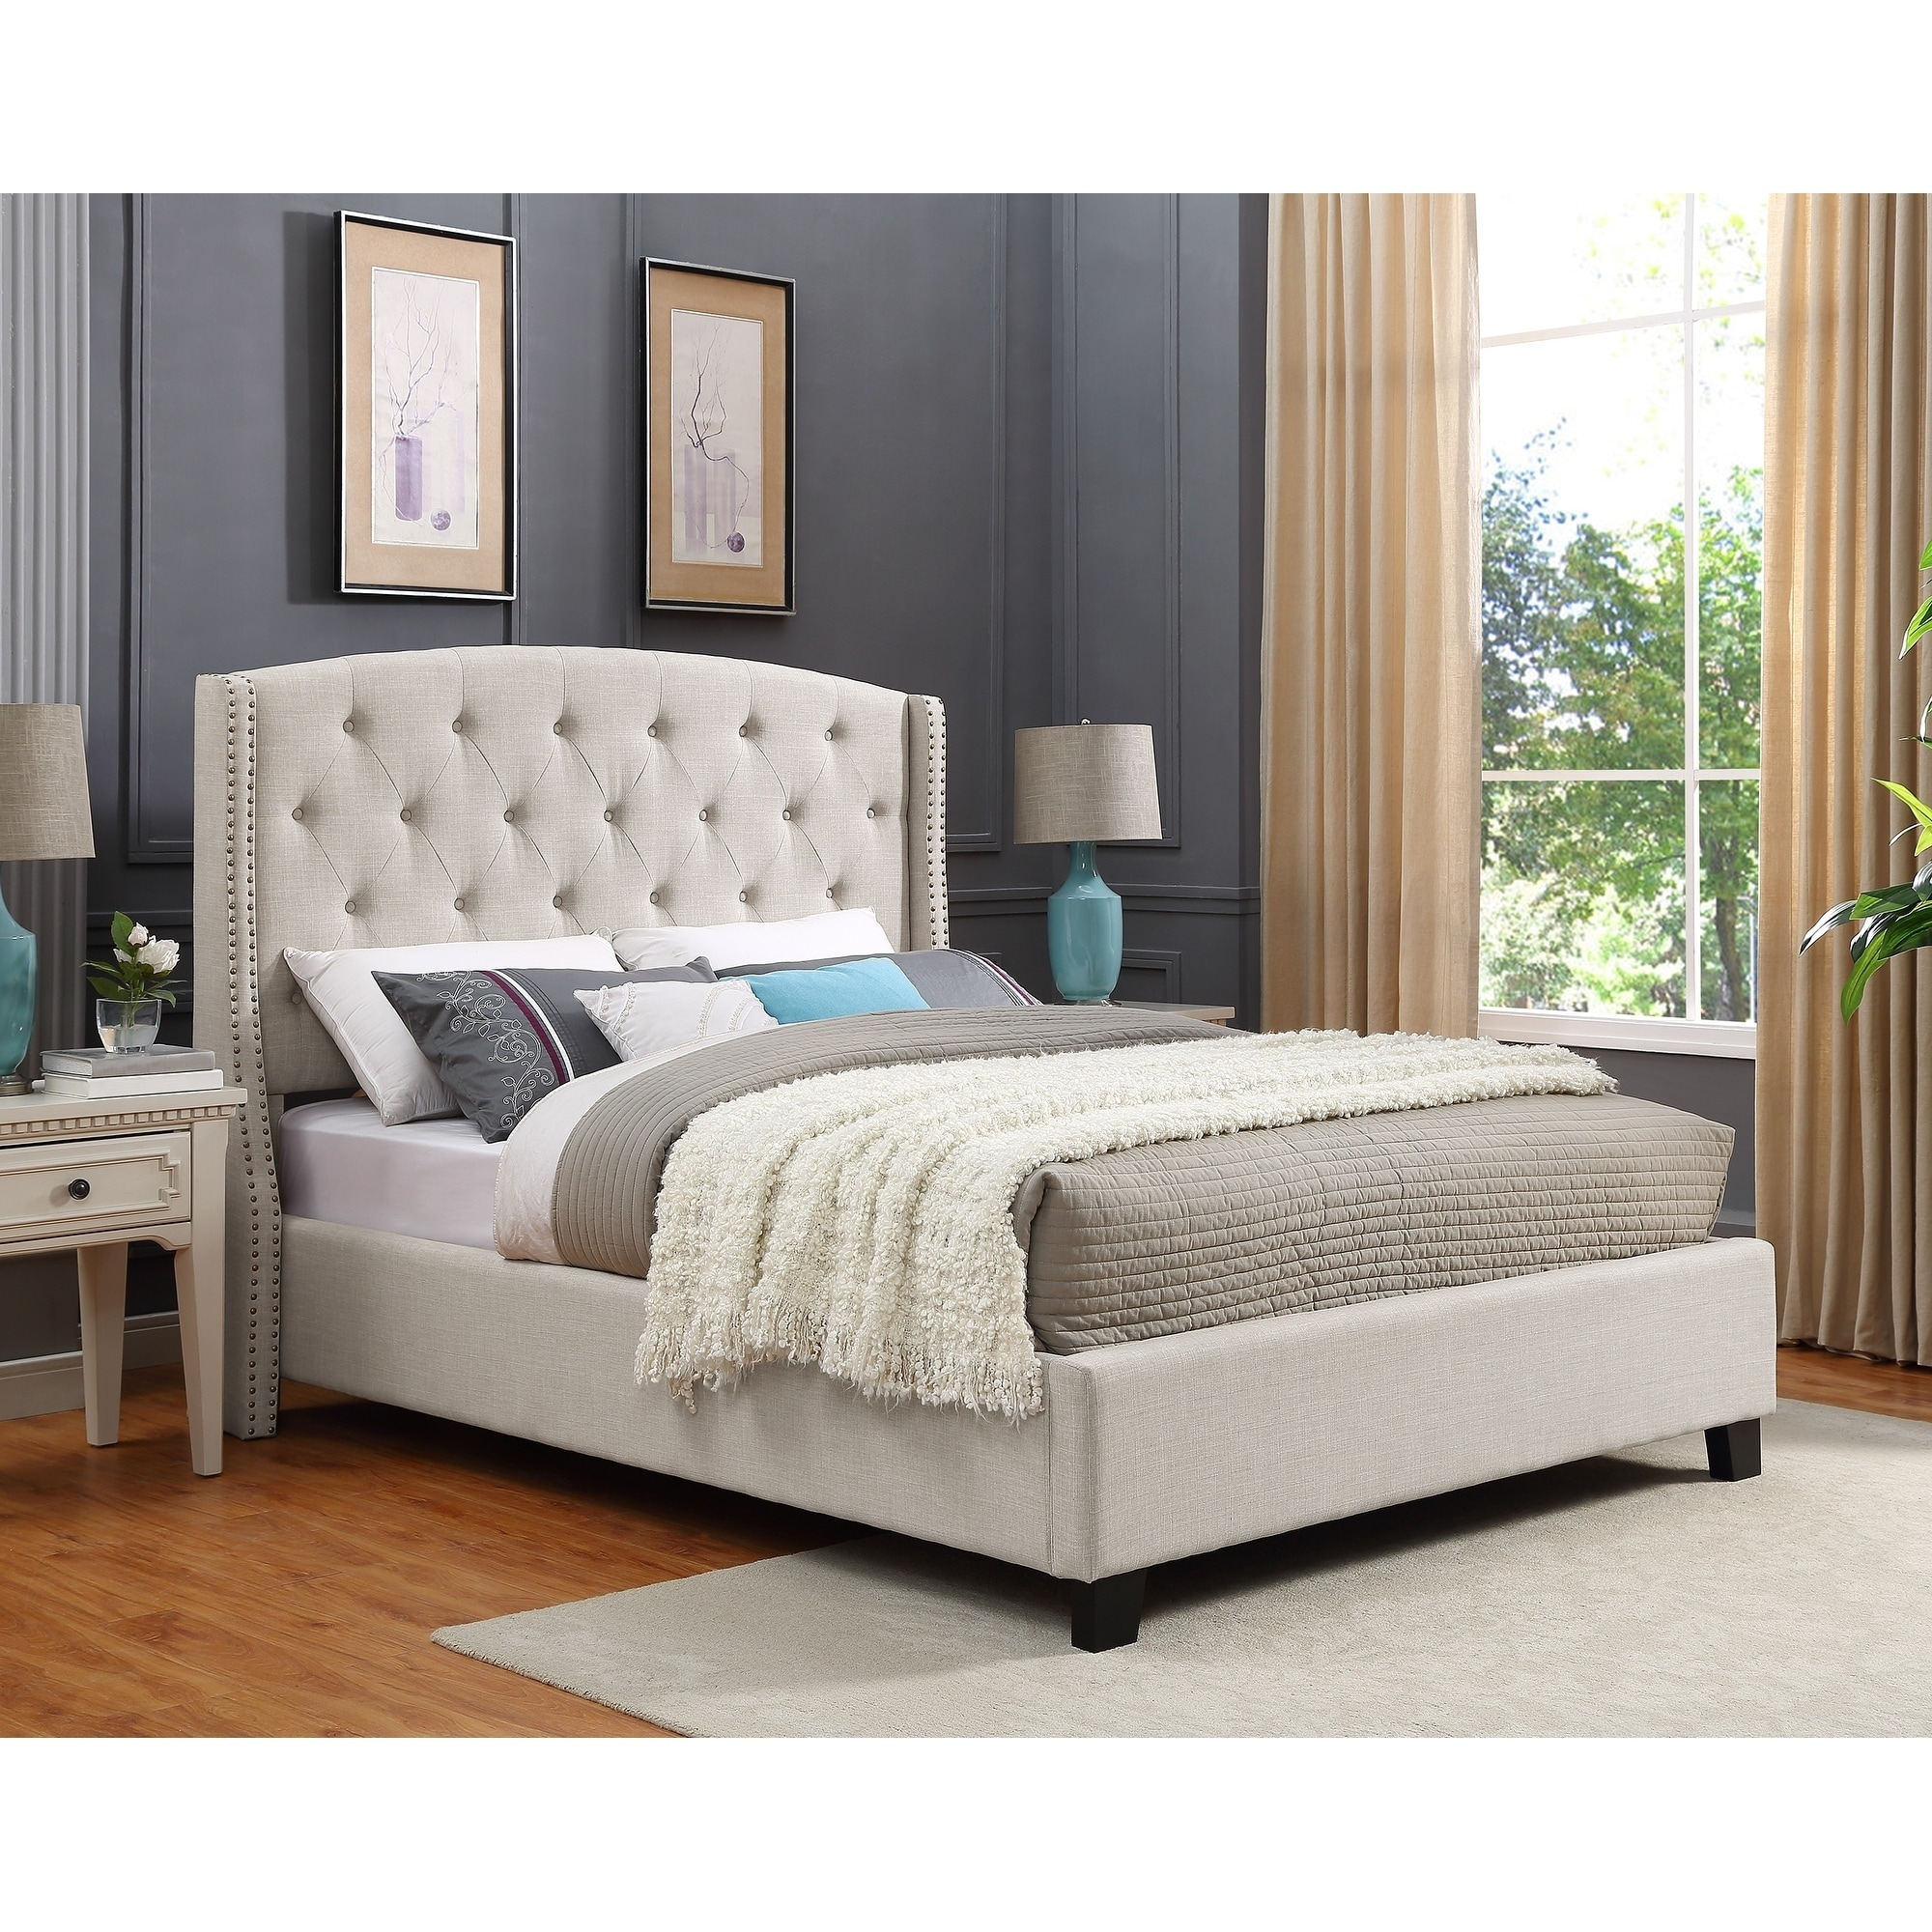 Nantarre Fabric Tufted Wingback Upholstered Bed With Nailhead Trim Tan Overstock 19835331